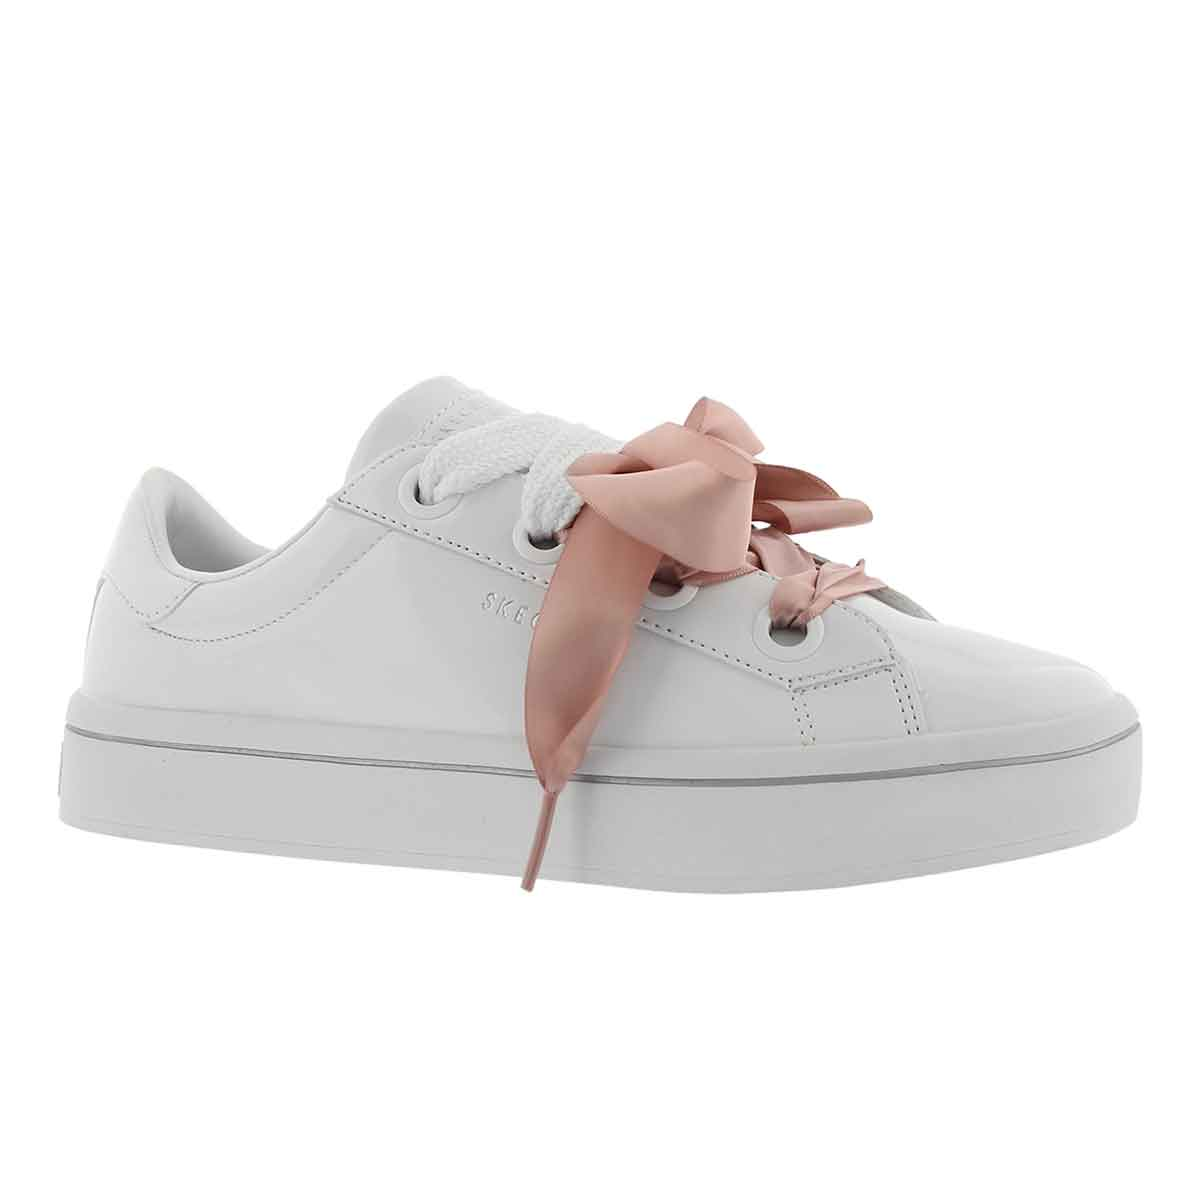 Women's HI-LITE white lace up sneakers